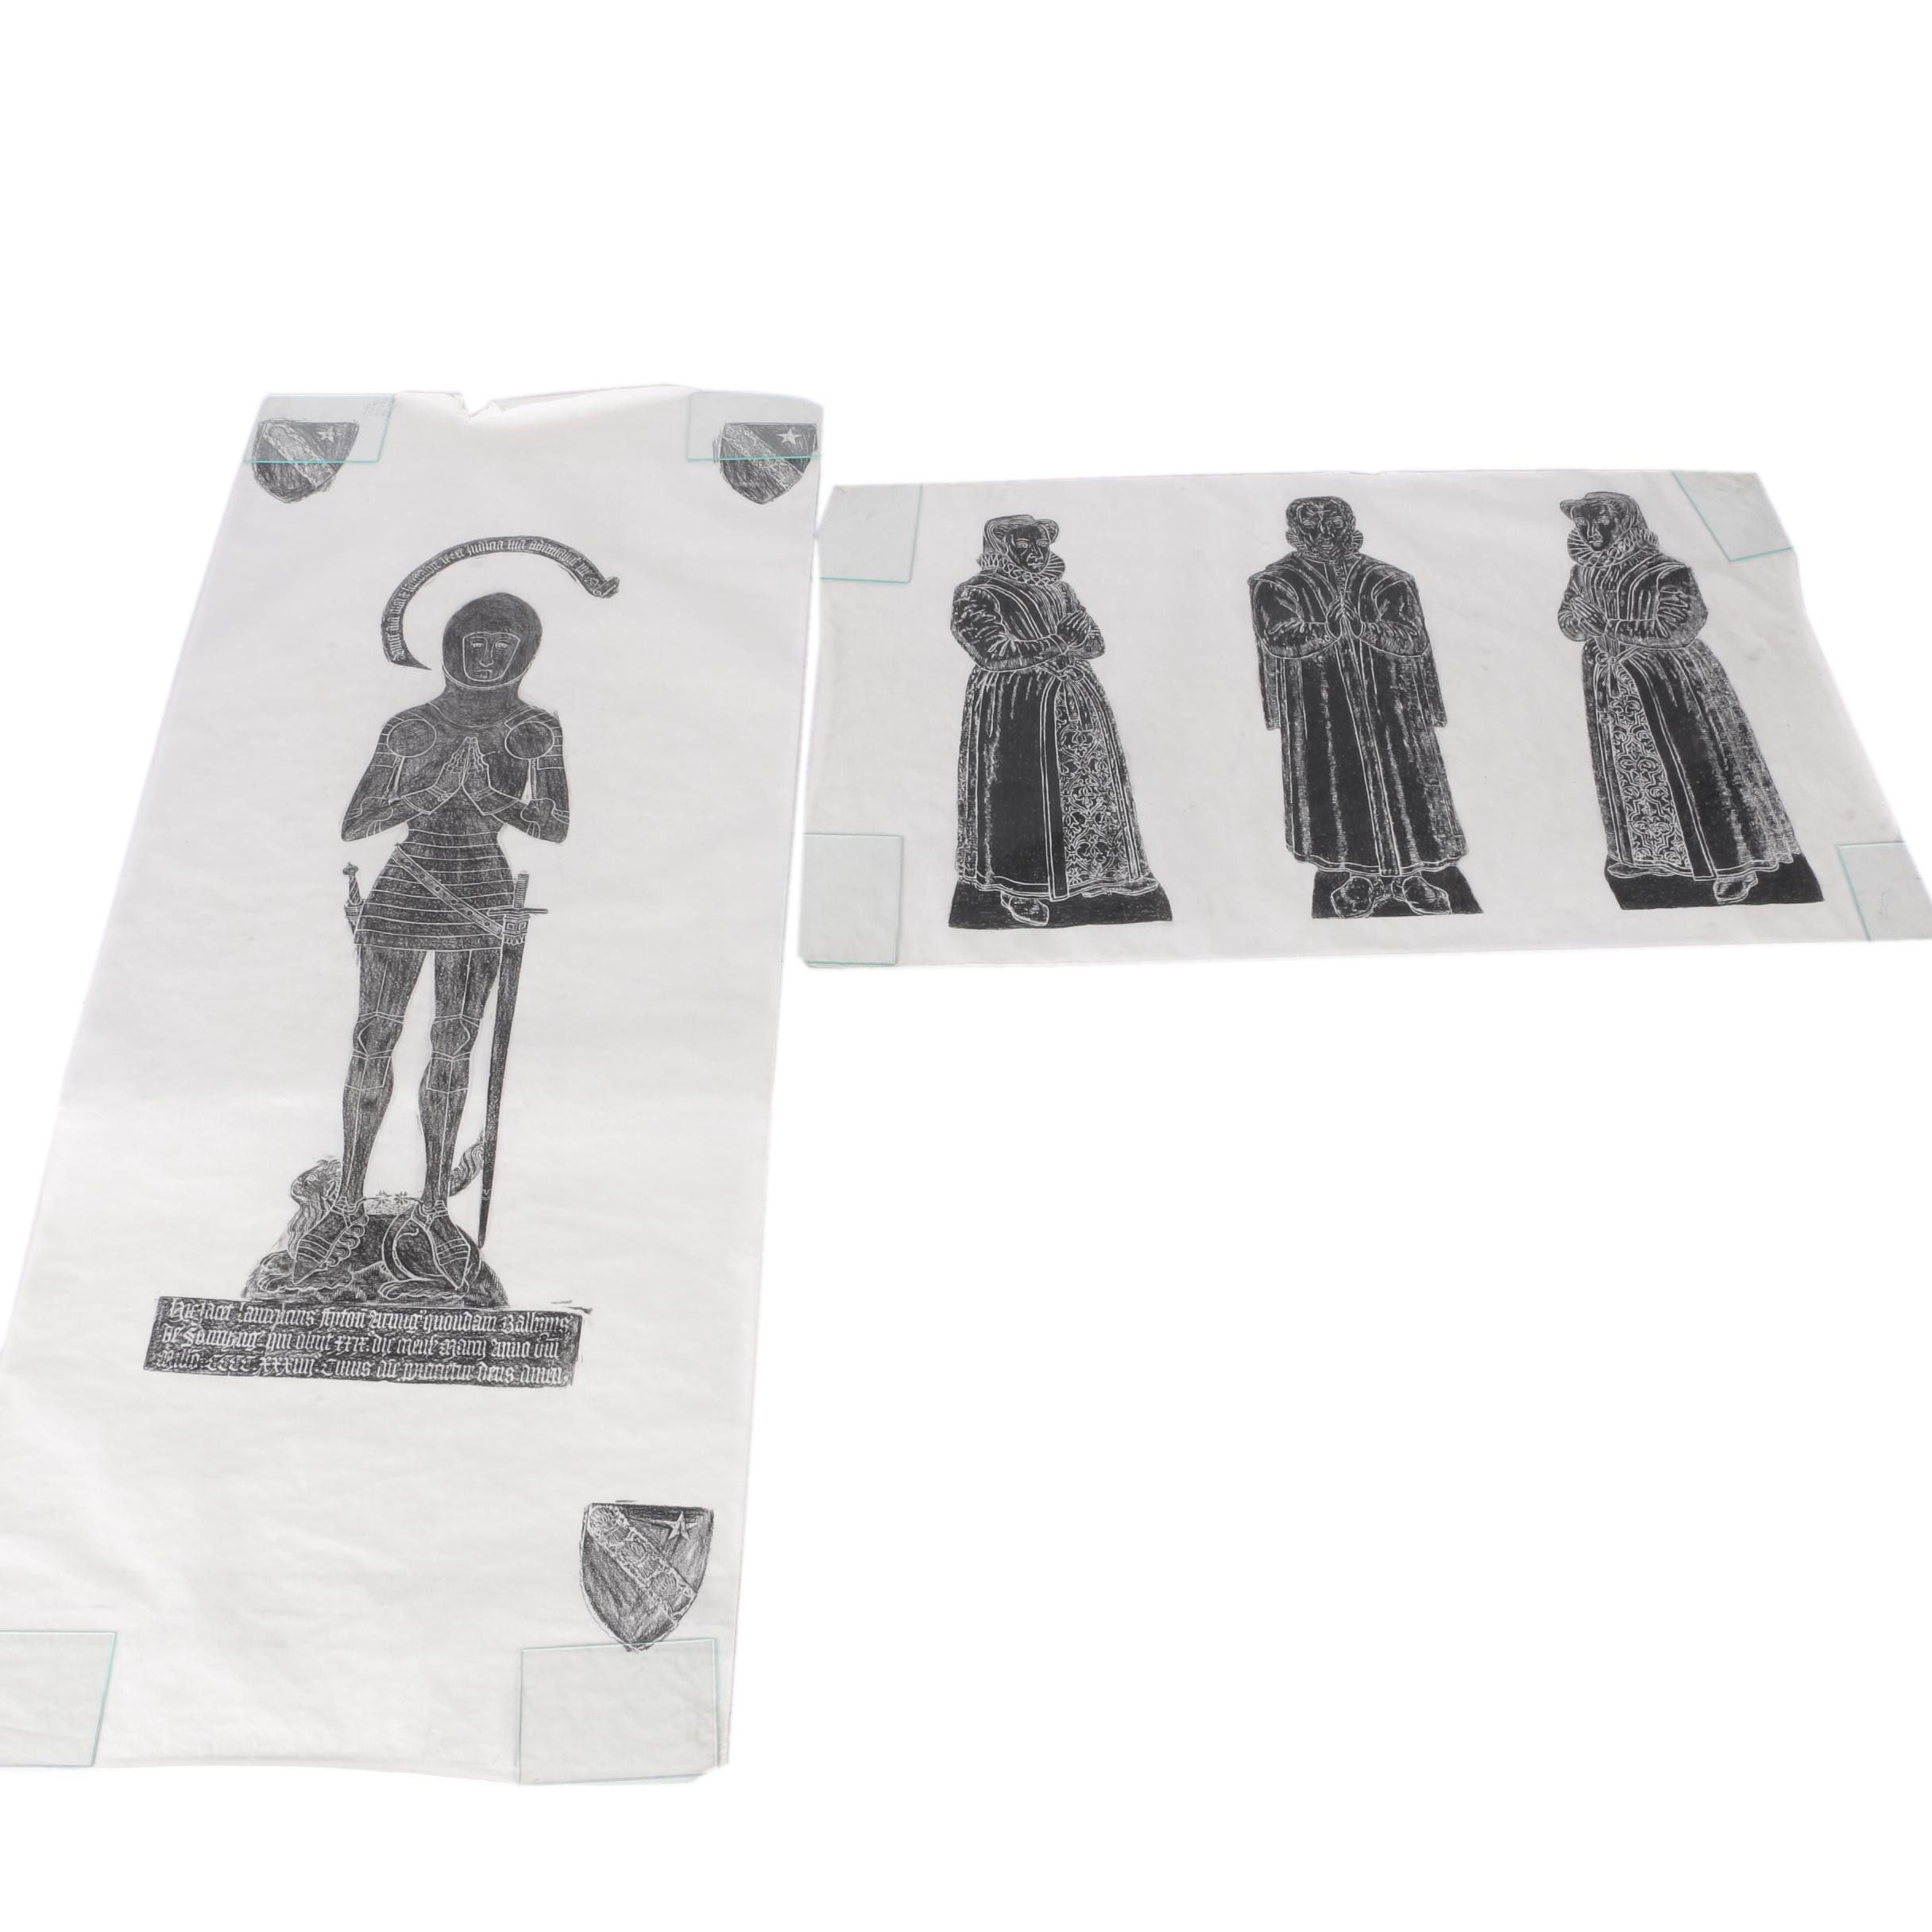 Two Charcoal Rubbings on Parchment Paper of Praying Figures